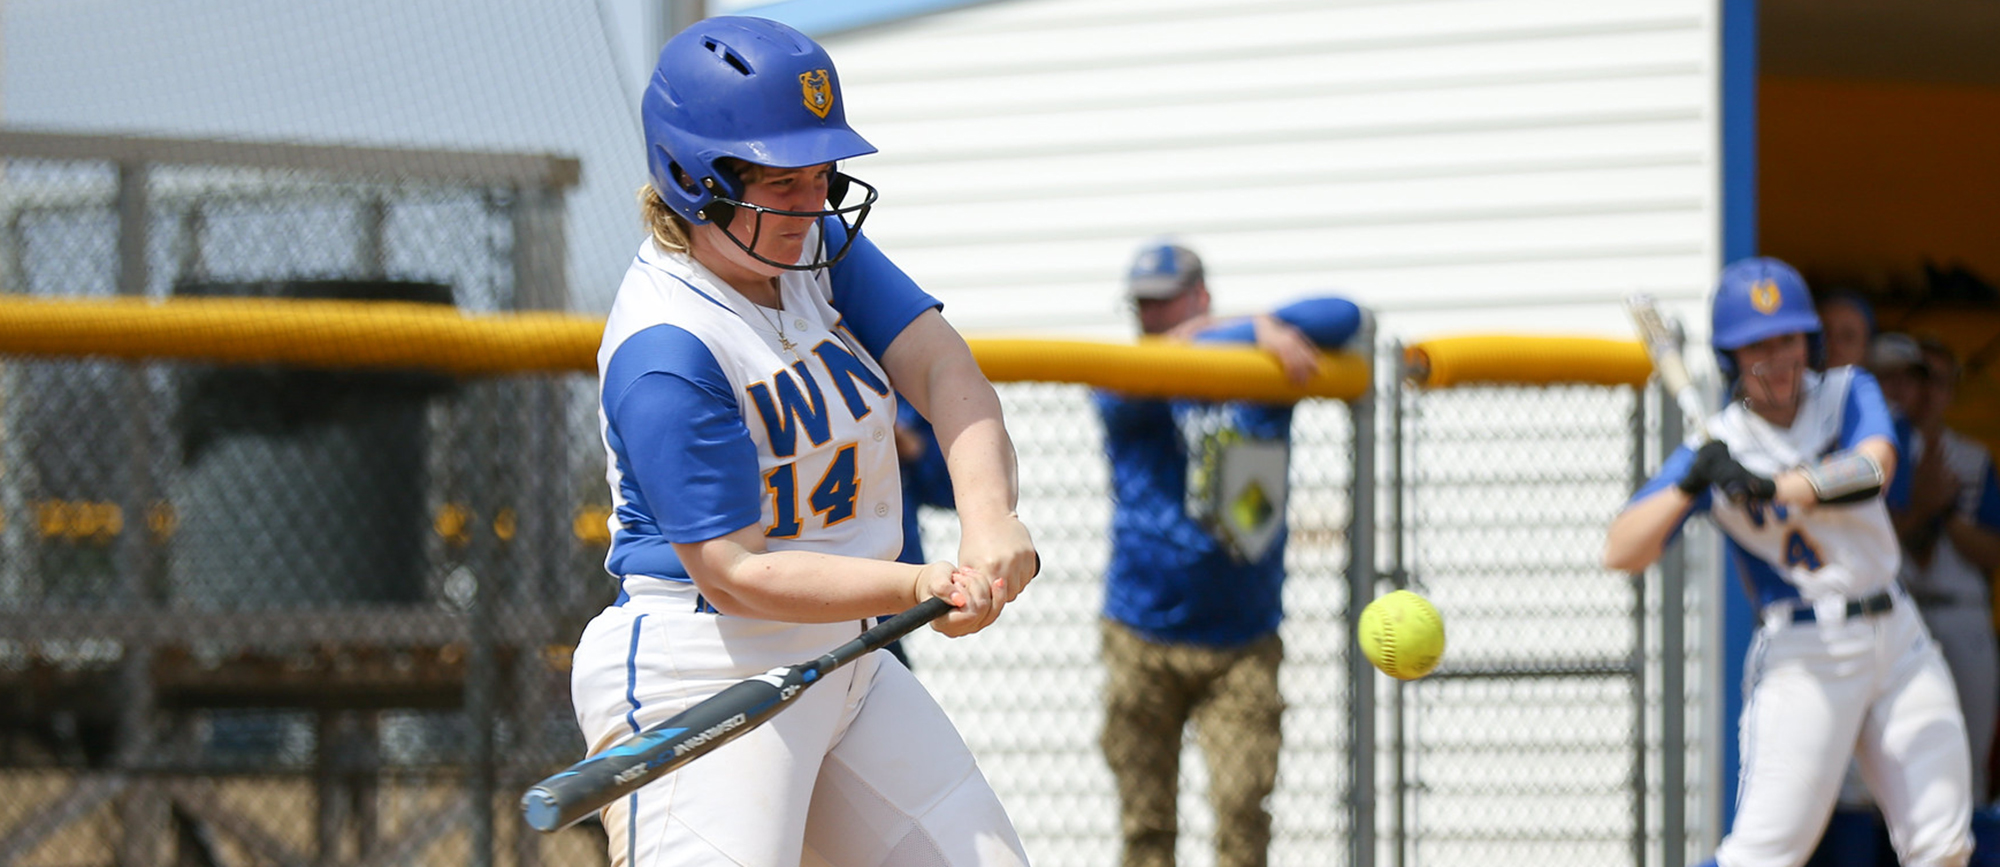 Dina DiBlasio hit her team-leading fourth home run of the season on Sunday as the Golden Bears split two games with Curry. (Photo by Chris Marion)